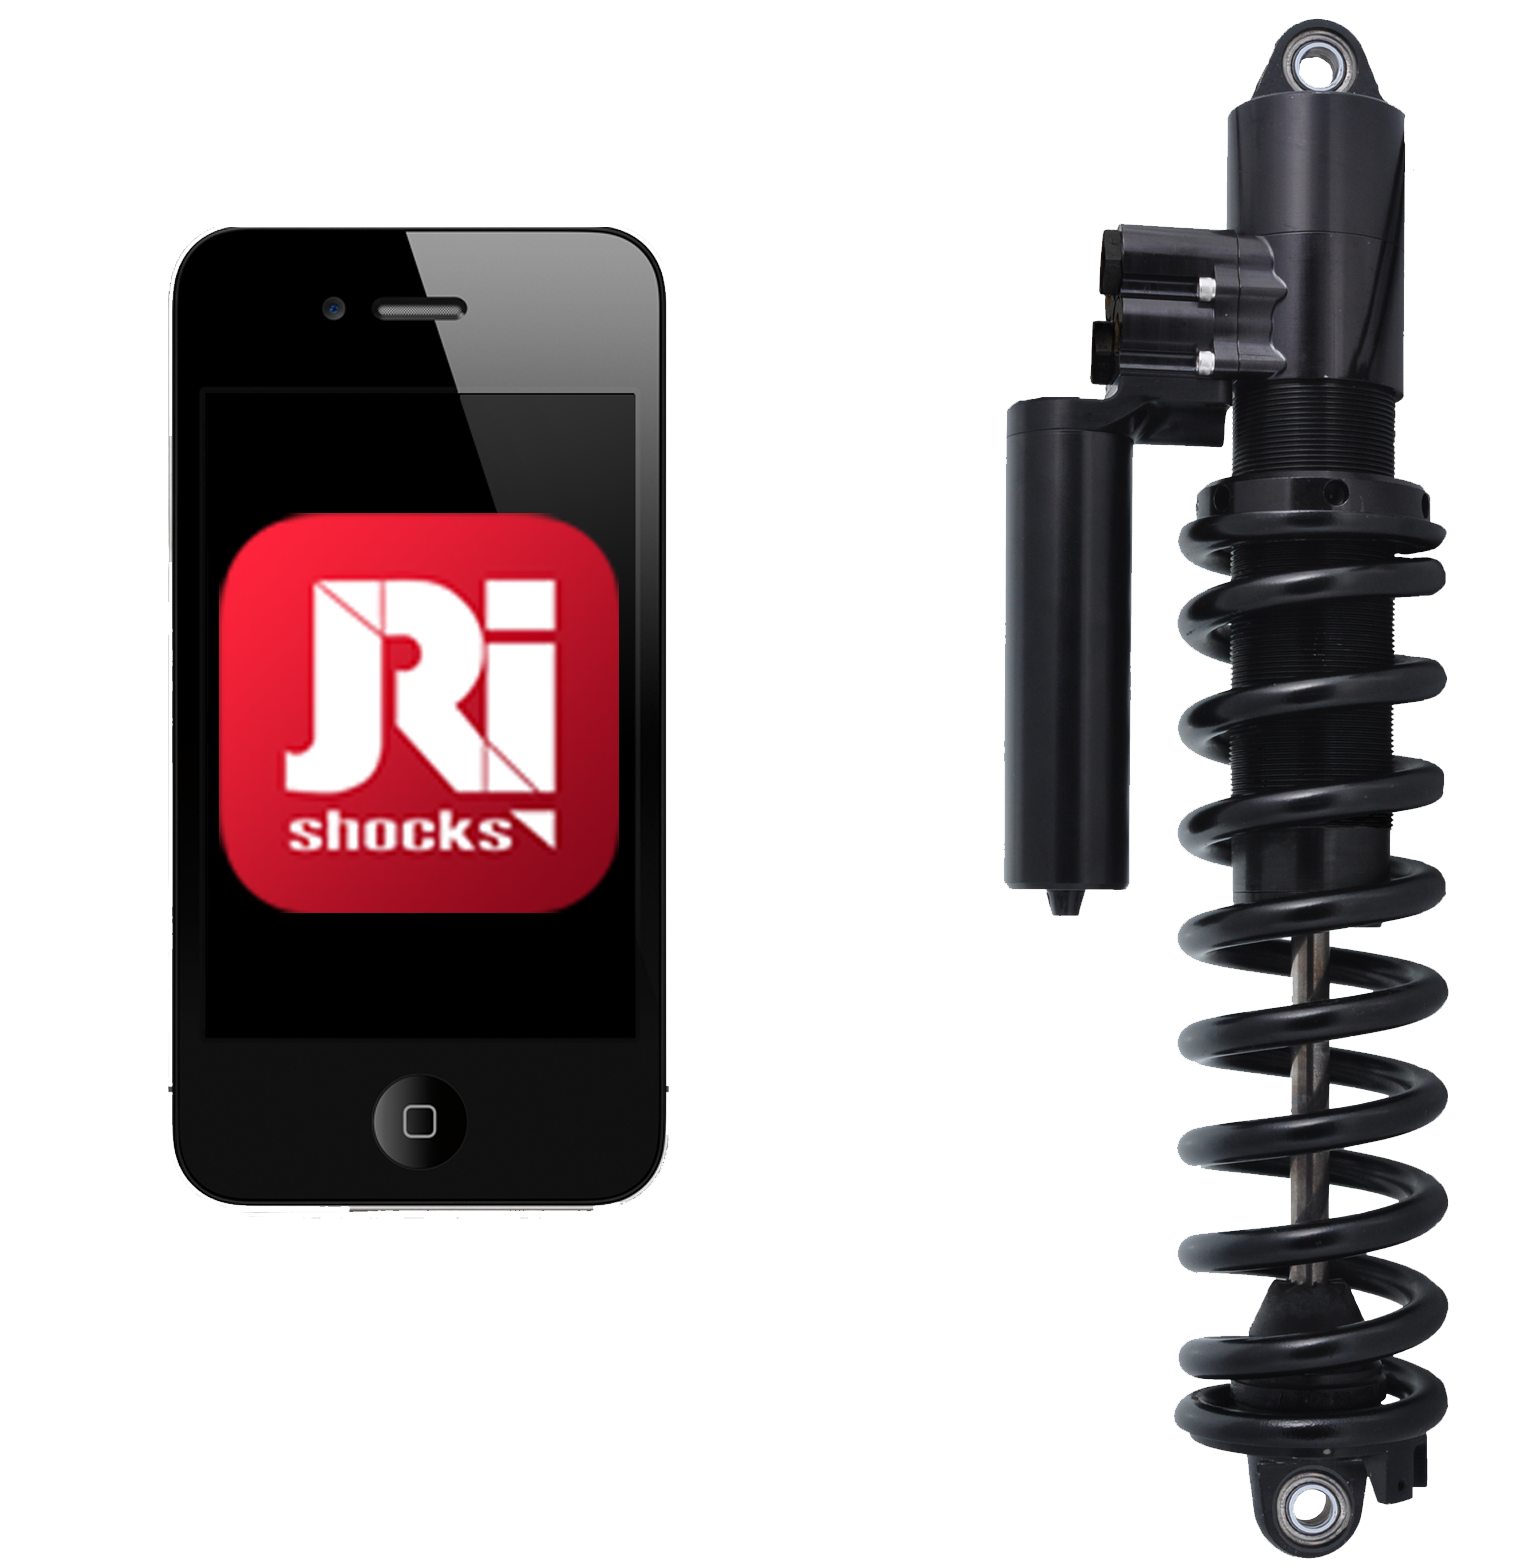 VIDEO: JRi Shocks Smart Phone Adjustable Shock System